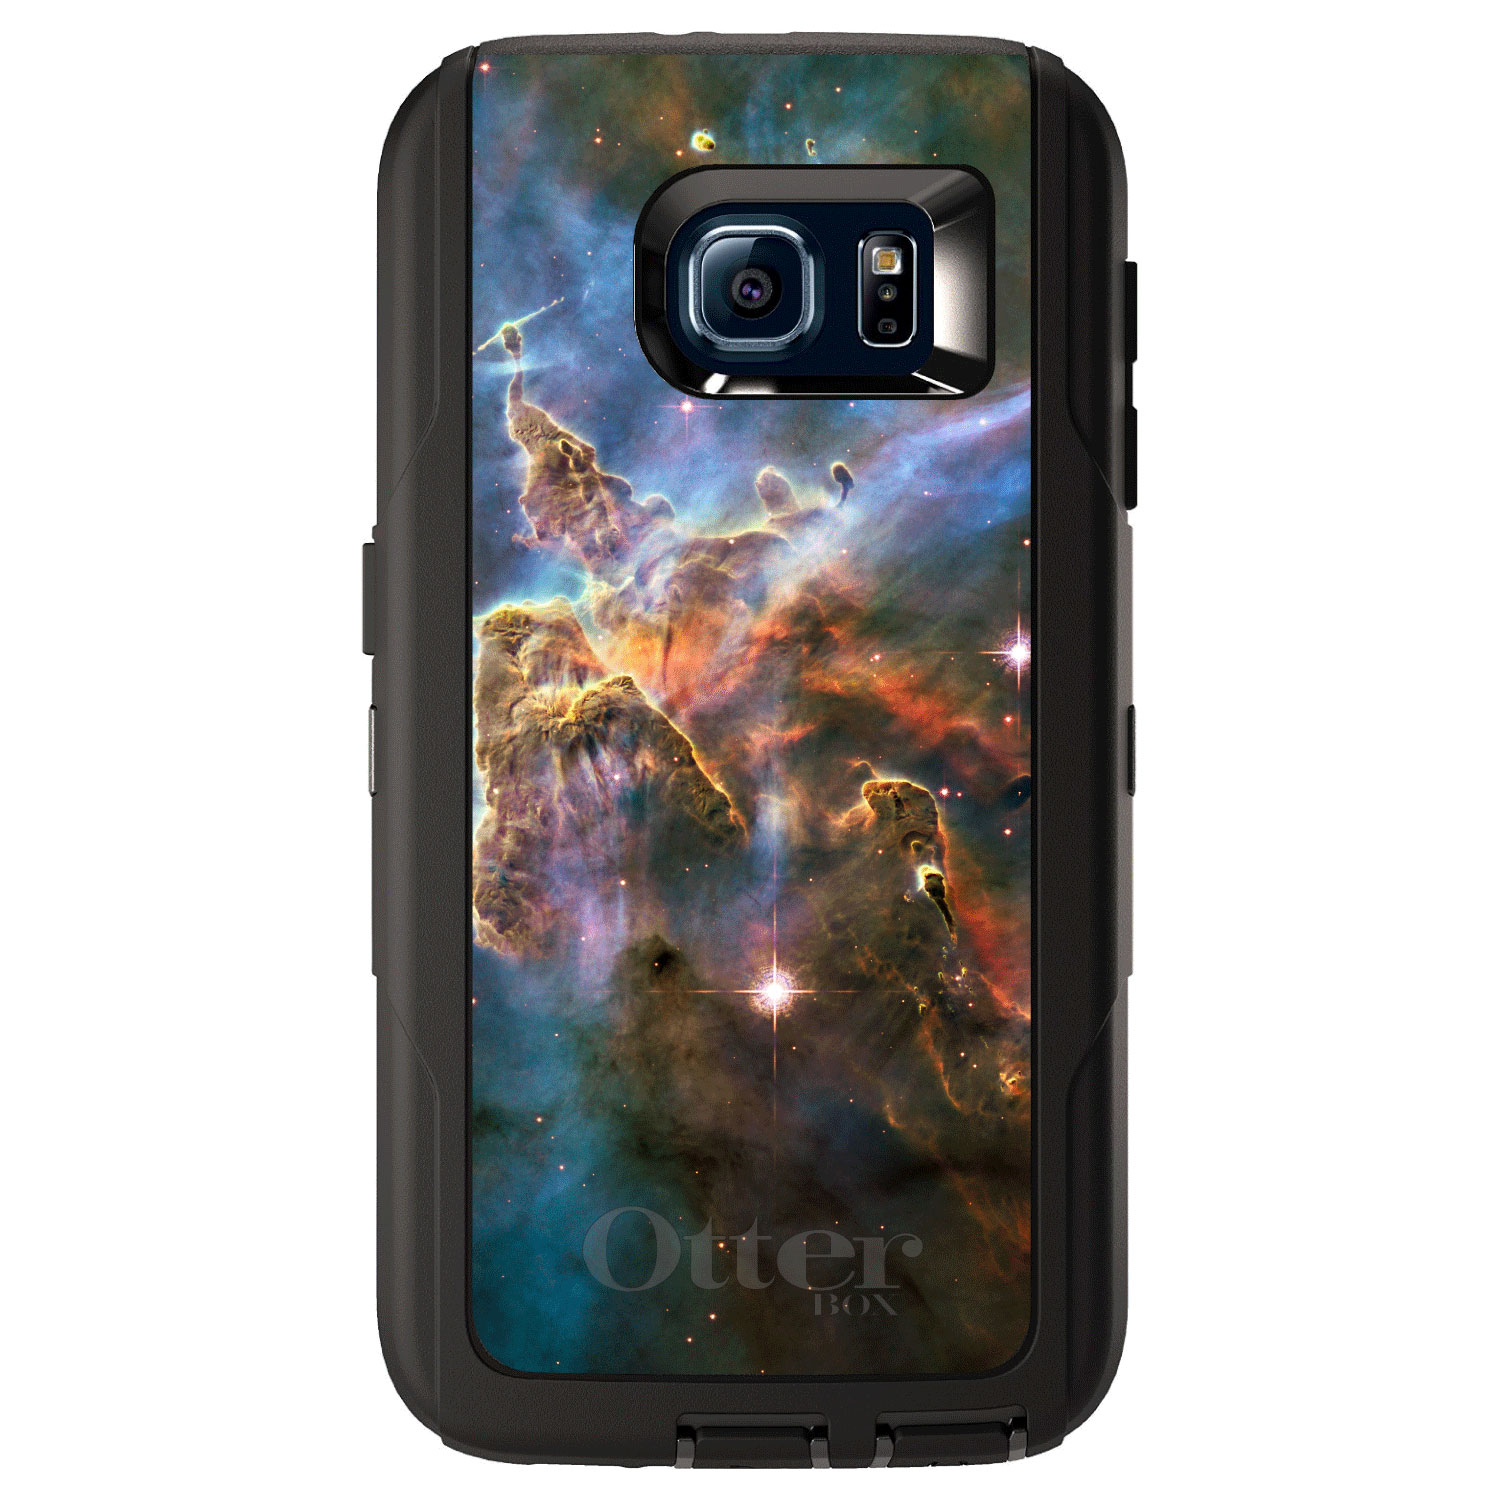 DistinctInk™ Custom Black OtterBox Defender Series Case for Samsung Galaxy S6 - Blue Pink Orange Carina Nebula